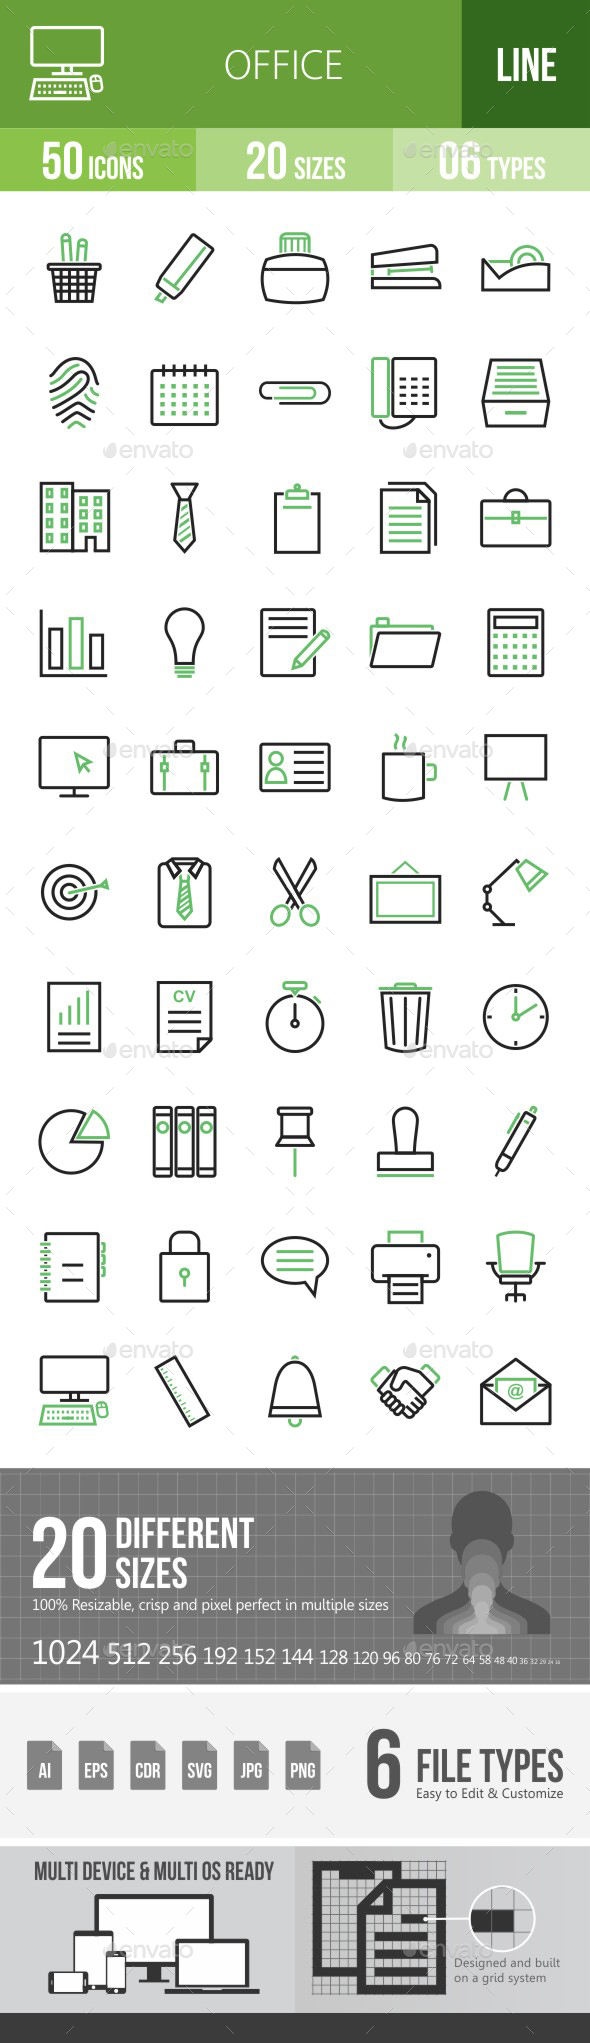 Office Green & Black Icons - Icons